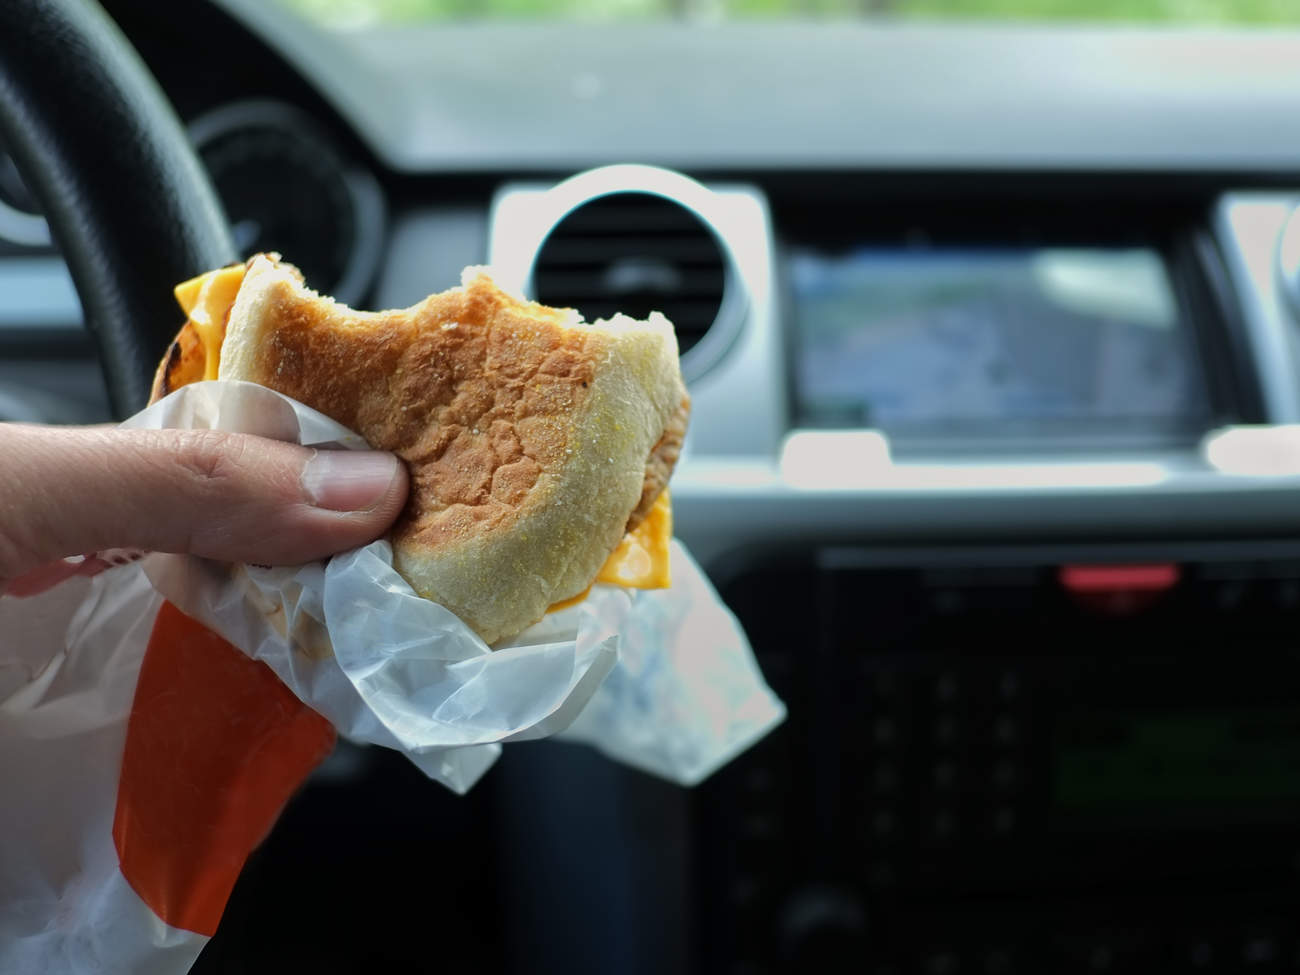 Driver eating fast food burger in car